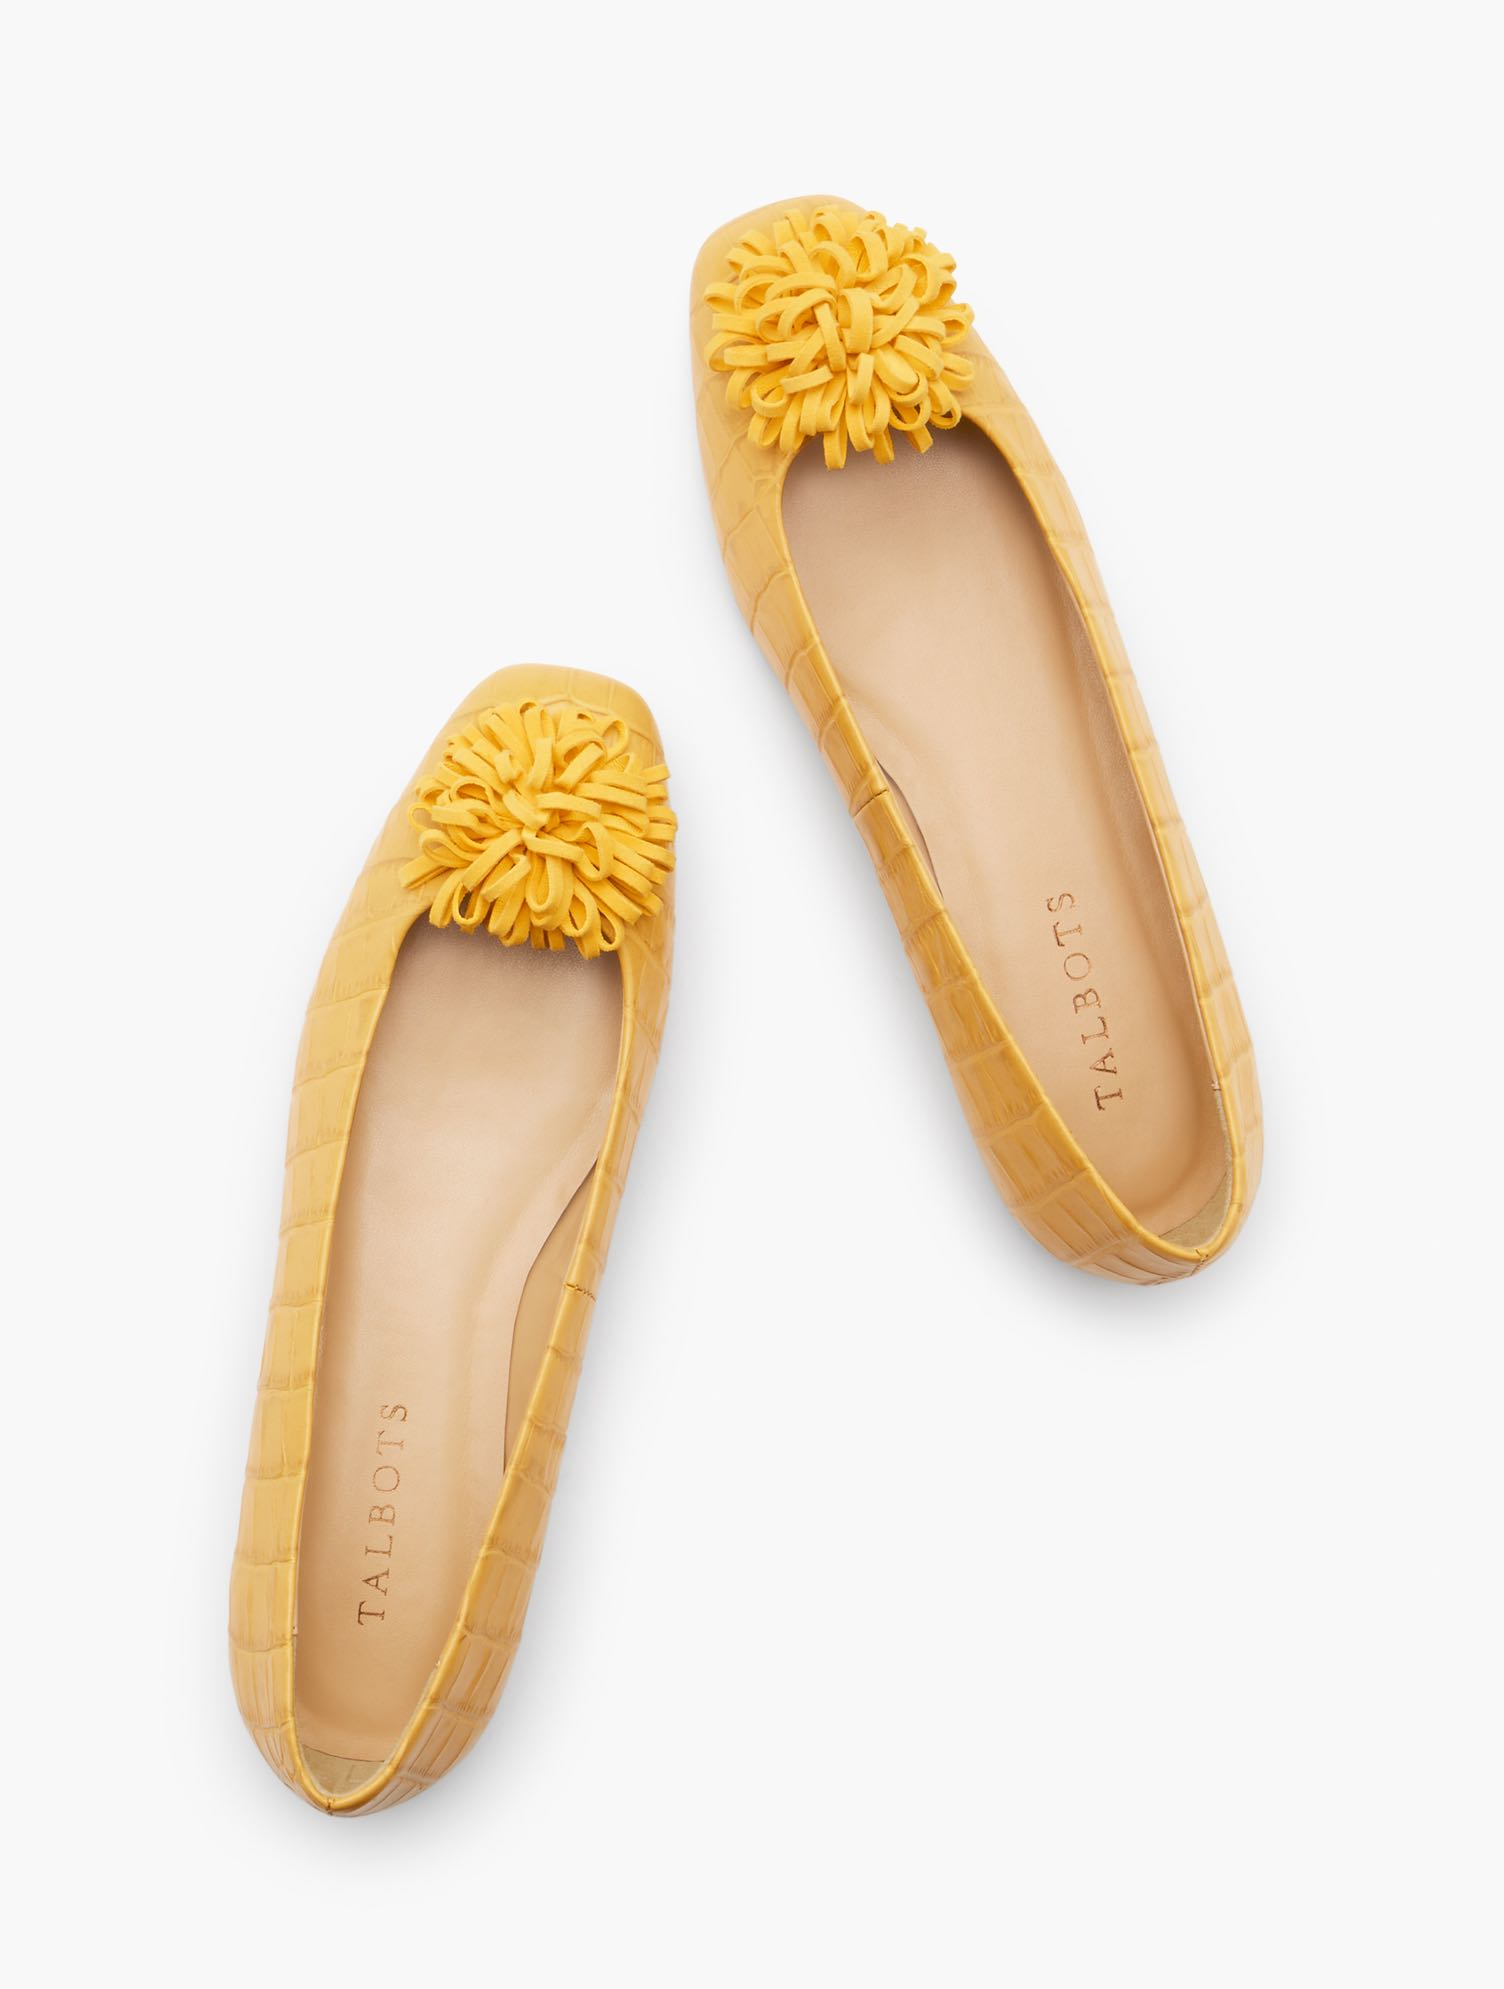 Retro Vintage Flats and Low Heel Shoes Stella Pom Pom Flats - Embossed Croc - Golden Apricot - 11M Talbots $54.99 AT vintagedancer.com